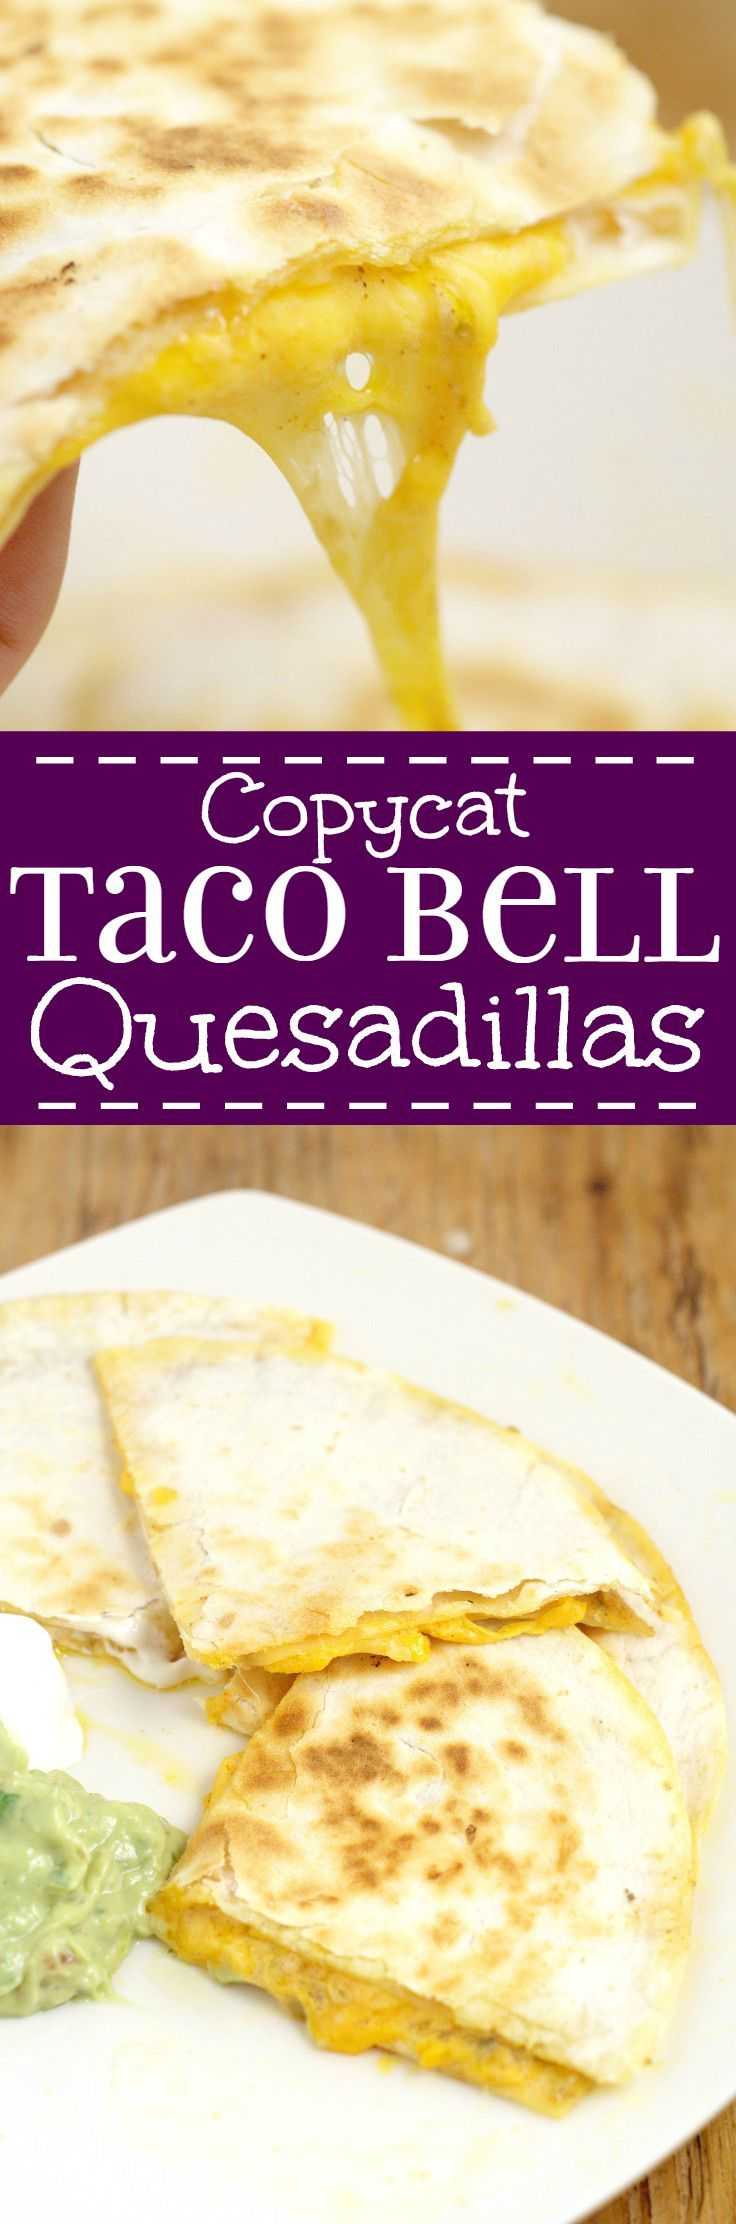 "Copycat Taco Bell Quesadillas - I added sour cream (no exact measurement, just kept tasting it and adding more if needed) and a little more mayo (hardly any more... VERY little! No exact measurement here either.) to this recipe because it was too spicy for my family. I would definitely not say it tastes ""just like"" or really ""anything like"" Taco Bell's sauce but it was good after I tweaked it."